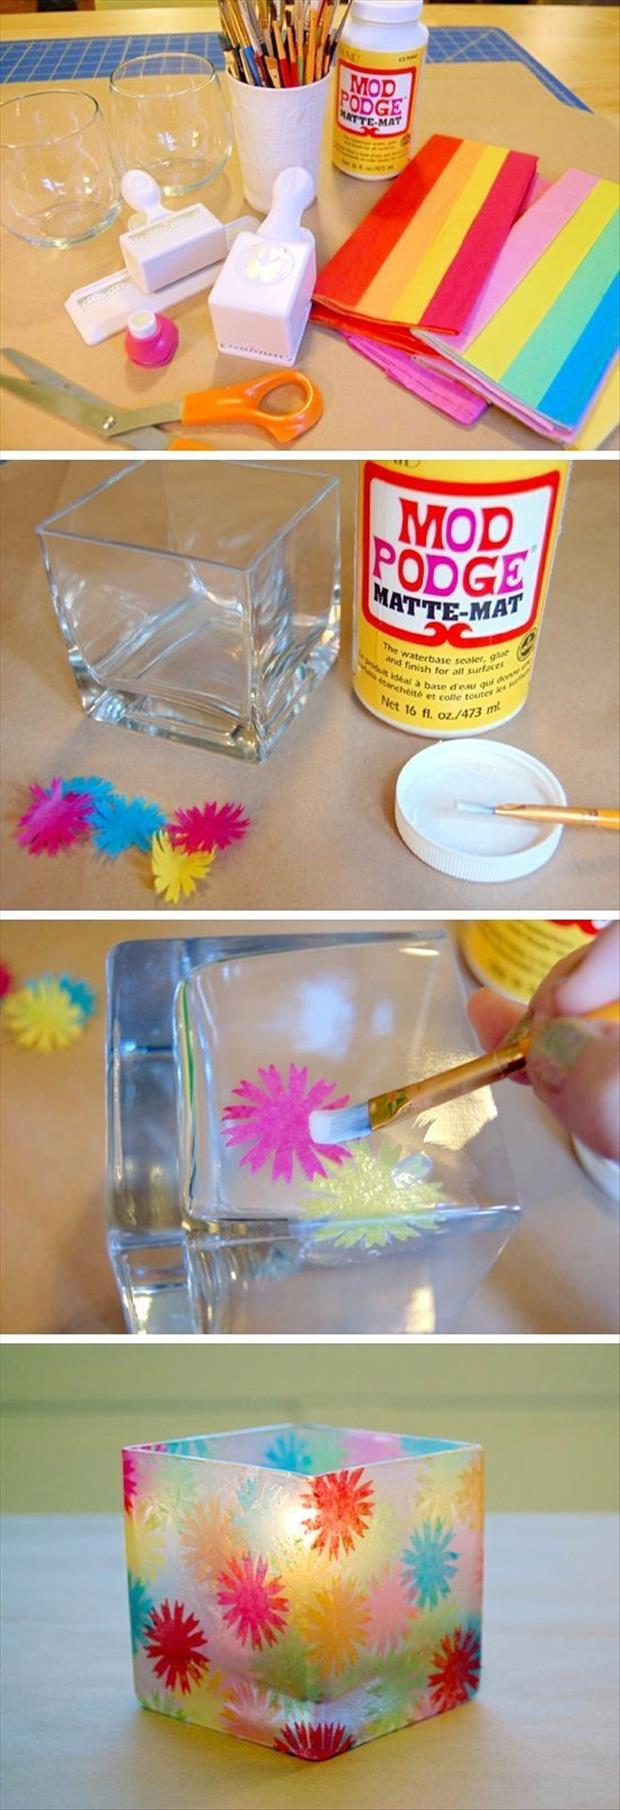 DIY Craft Ideas-hometshetics (2)